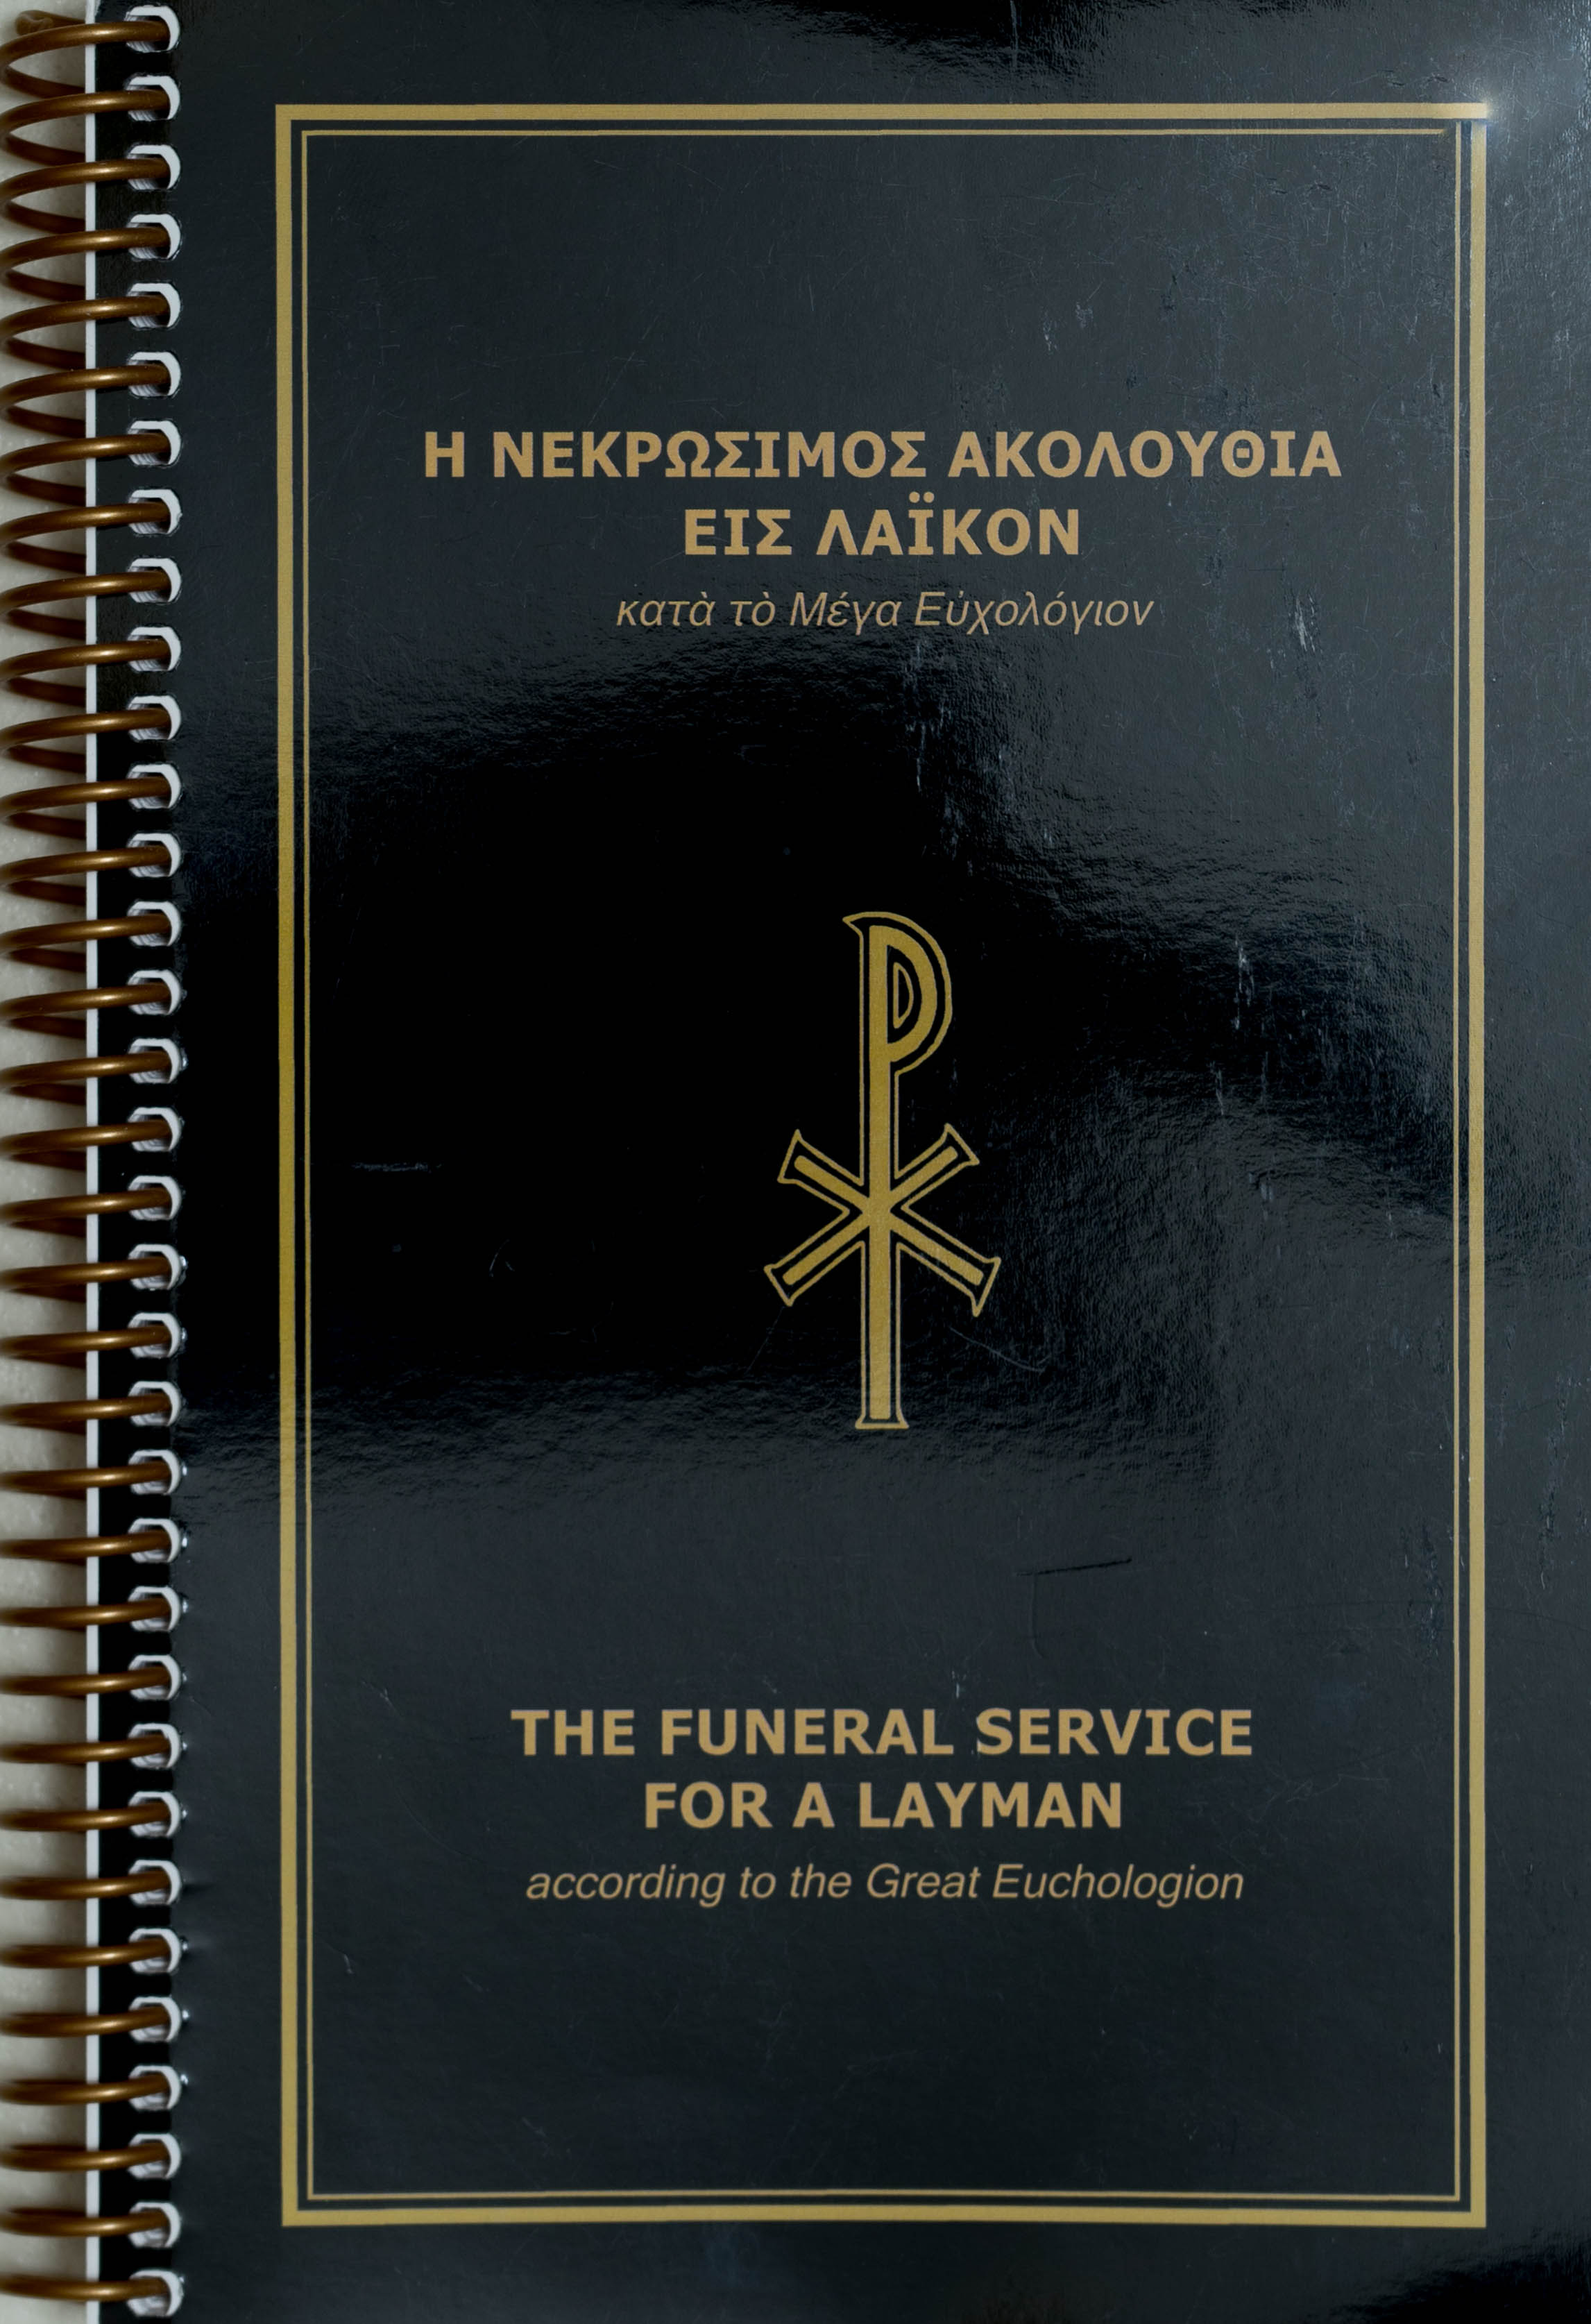 The Funeral Service For A Layman: according to the Great Euchologian